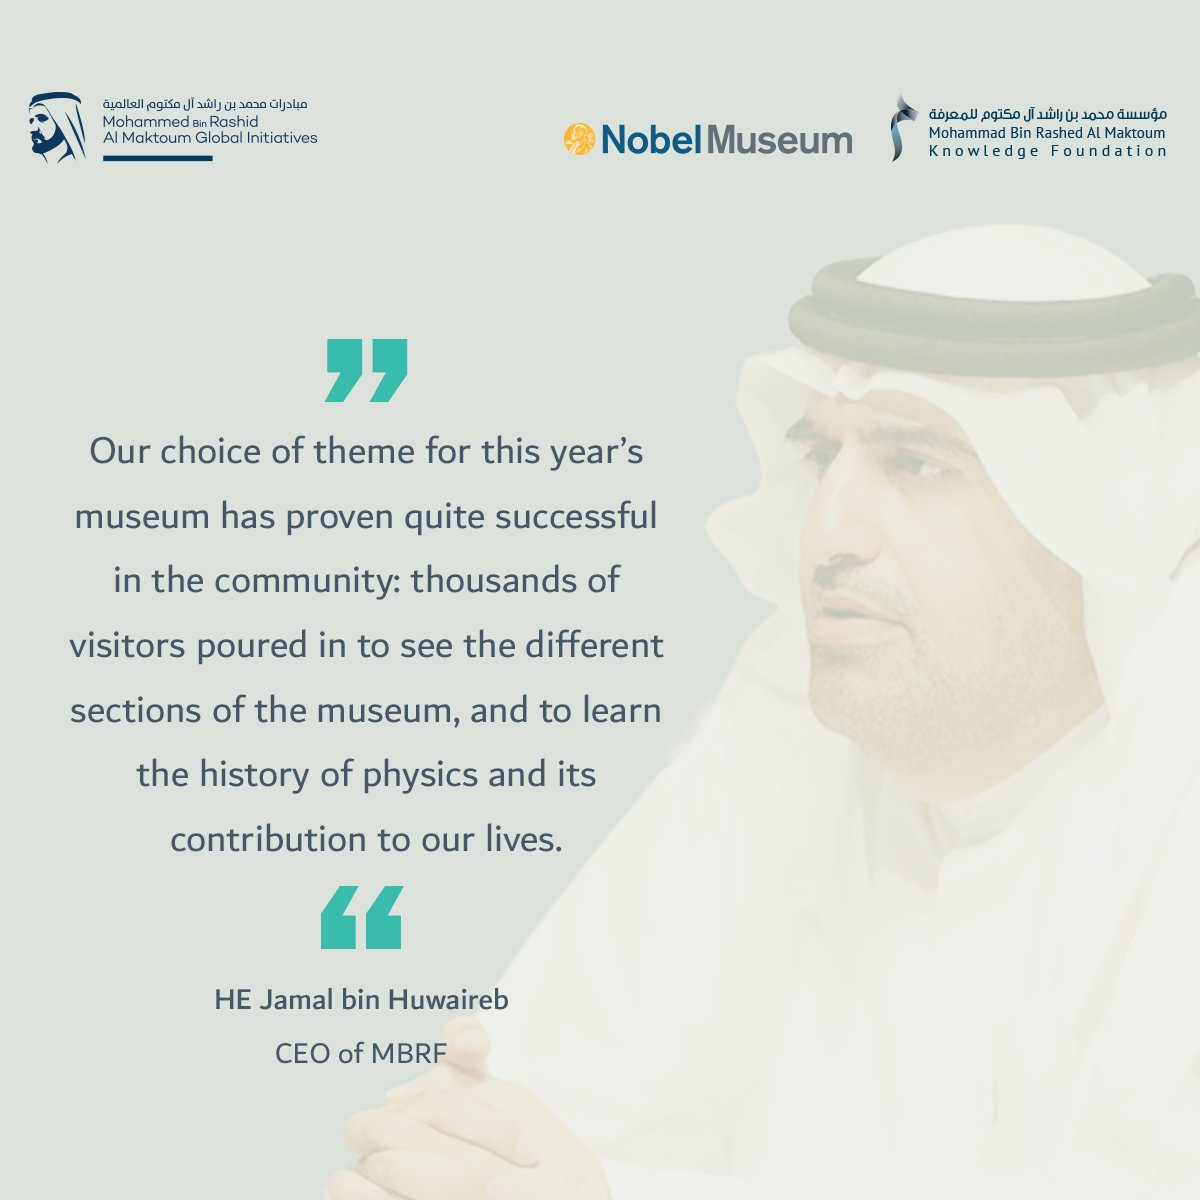 HE Jamal bin Huwaireb, CEO of #MBRF, highlights the success of this year's #NobelMuseum theme<br>http://pic.twitter.com/AViXZqw4wP